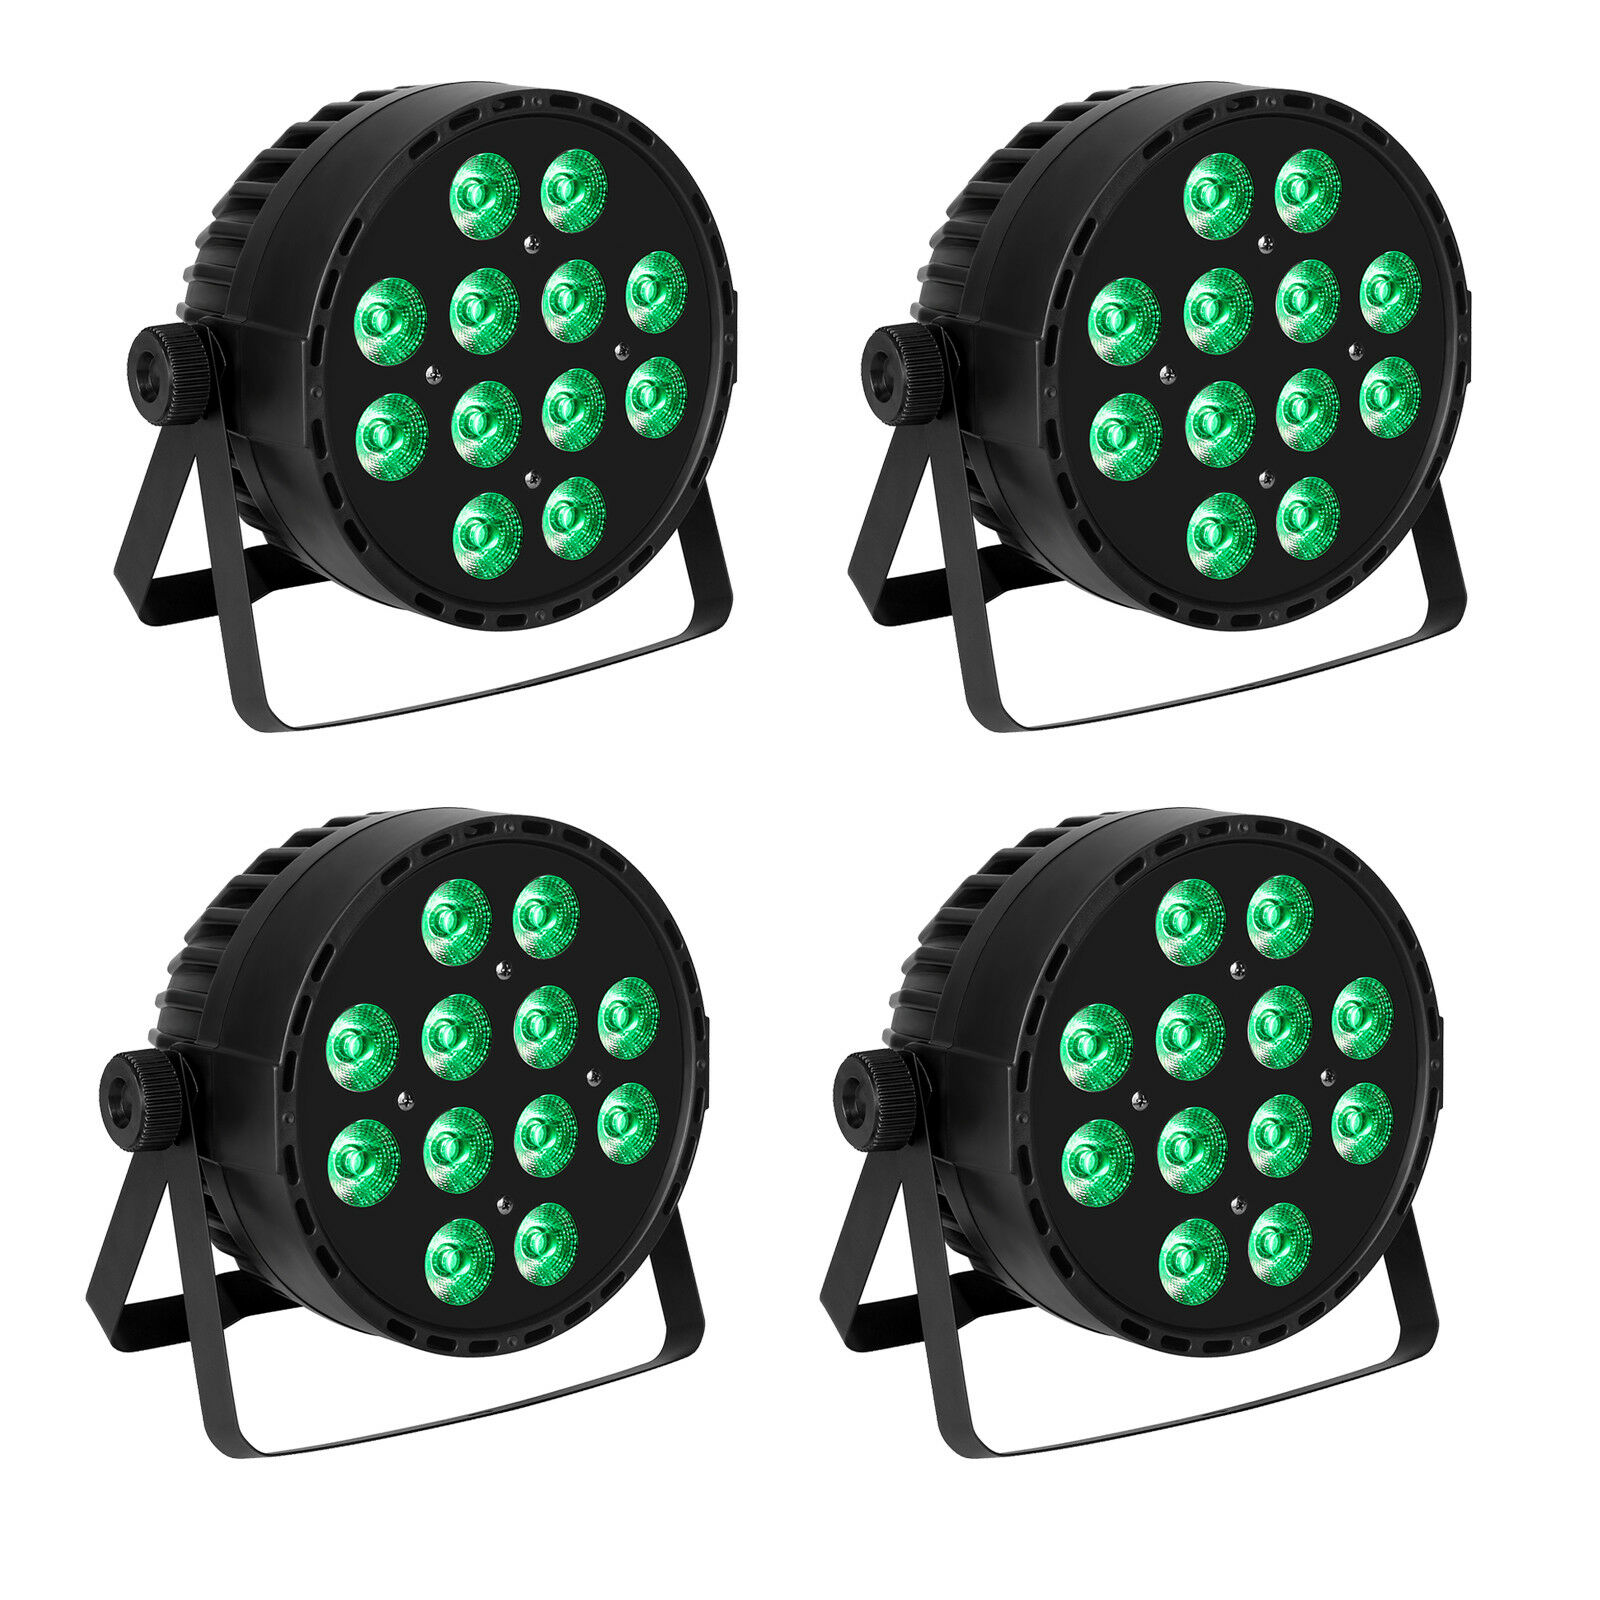 4x DJ Stage Par Can Uplighting 1210W RGBW LED DMX512 color Mixing Wall Washer